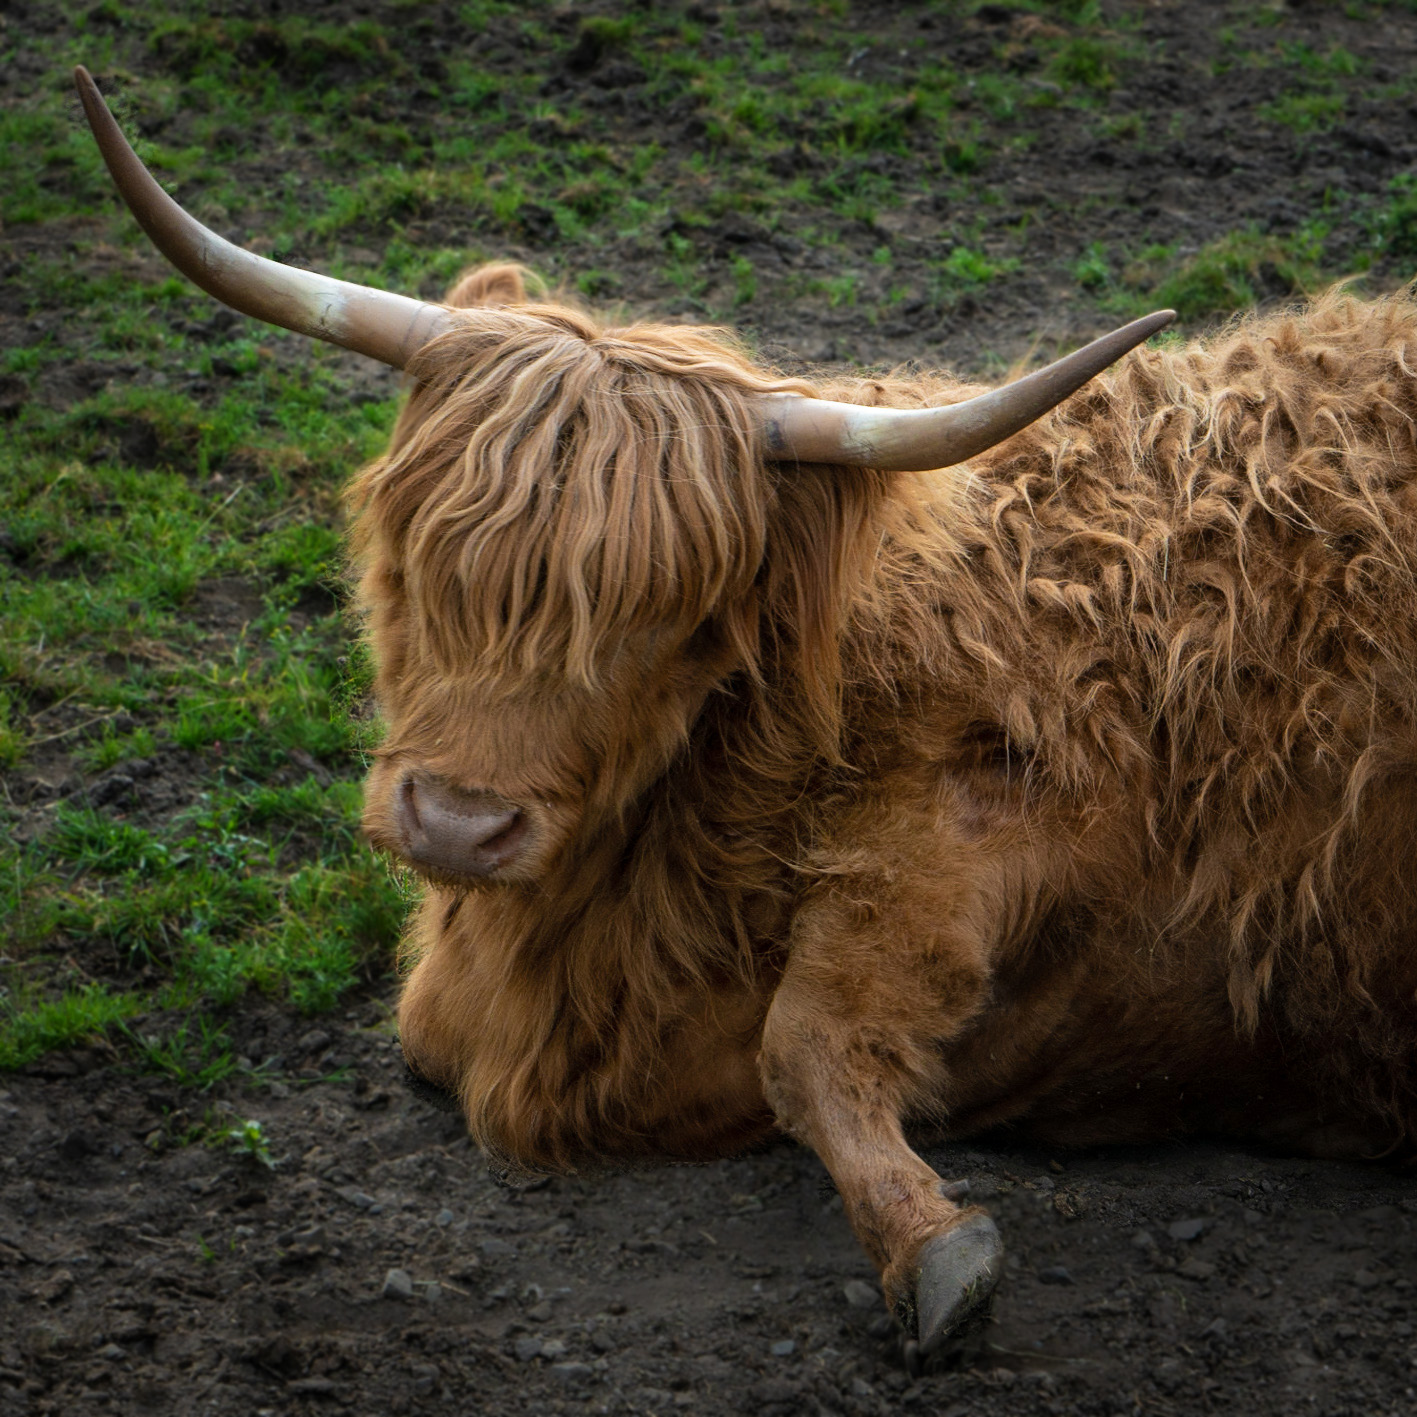 #scotland, #highlands, #highlandcow, #cow, #hairy, #hairycoo, #cute, #whatishethinking